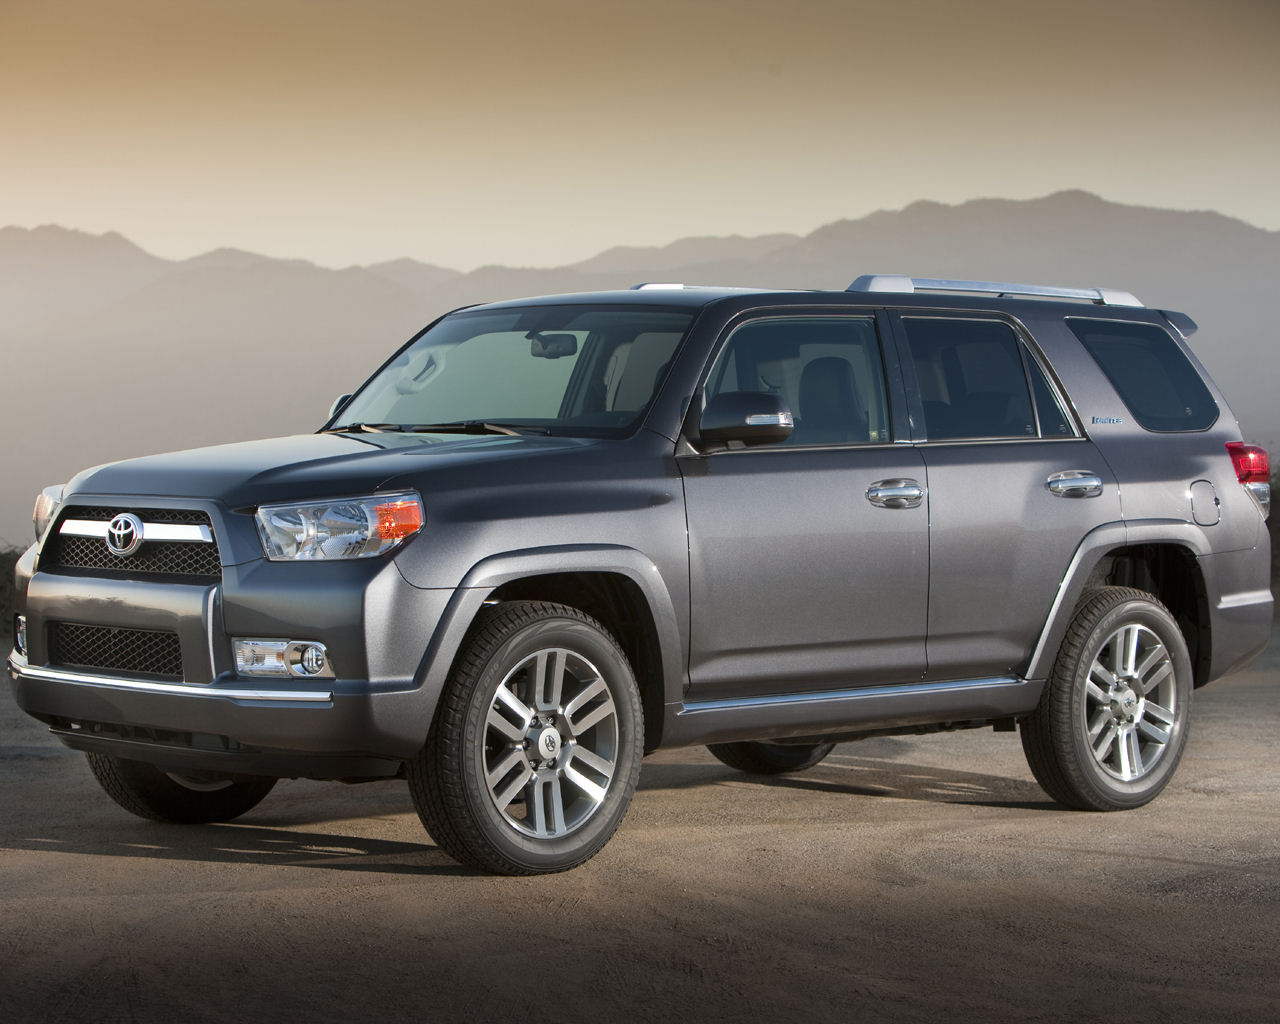 toyota 4runner sr5 sport limited v8 awd free 1280x1024 wallpaper desktop background picture. Black Bedroom Furniture Sets. Home Design Ideas